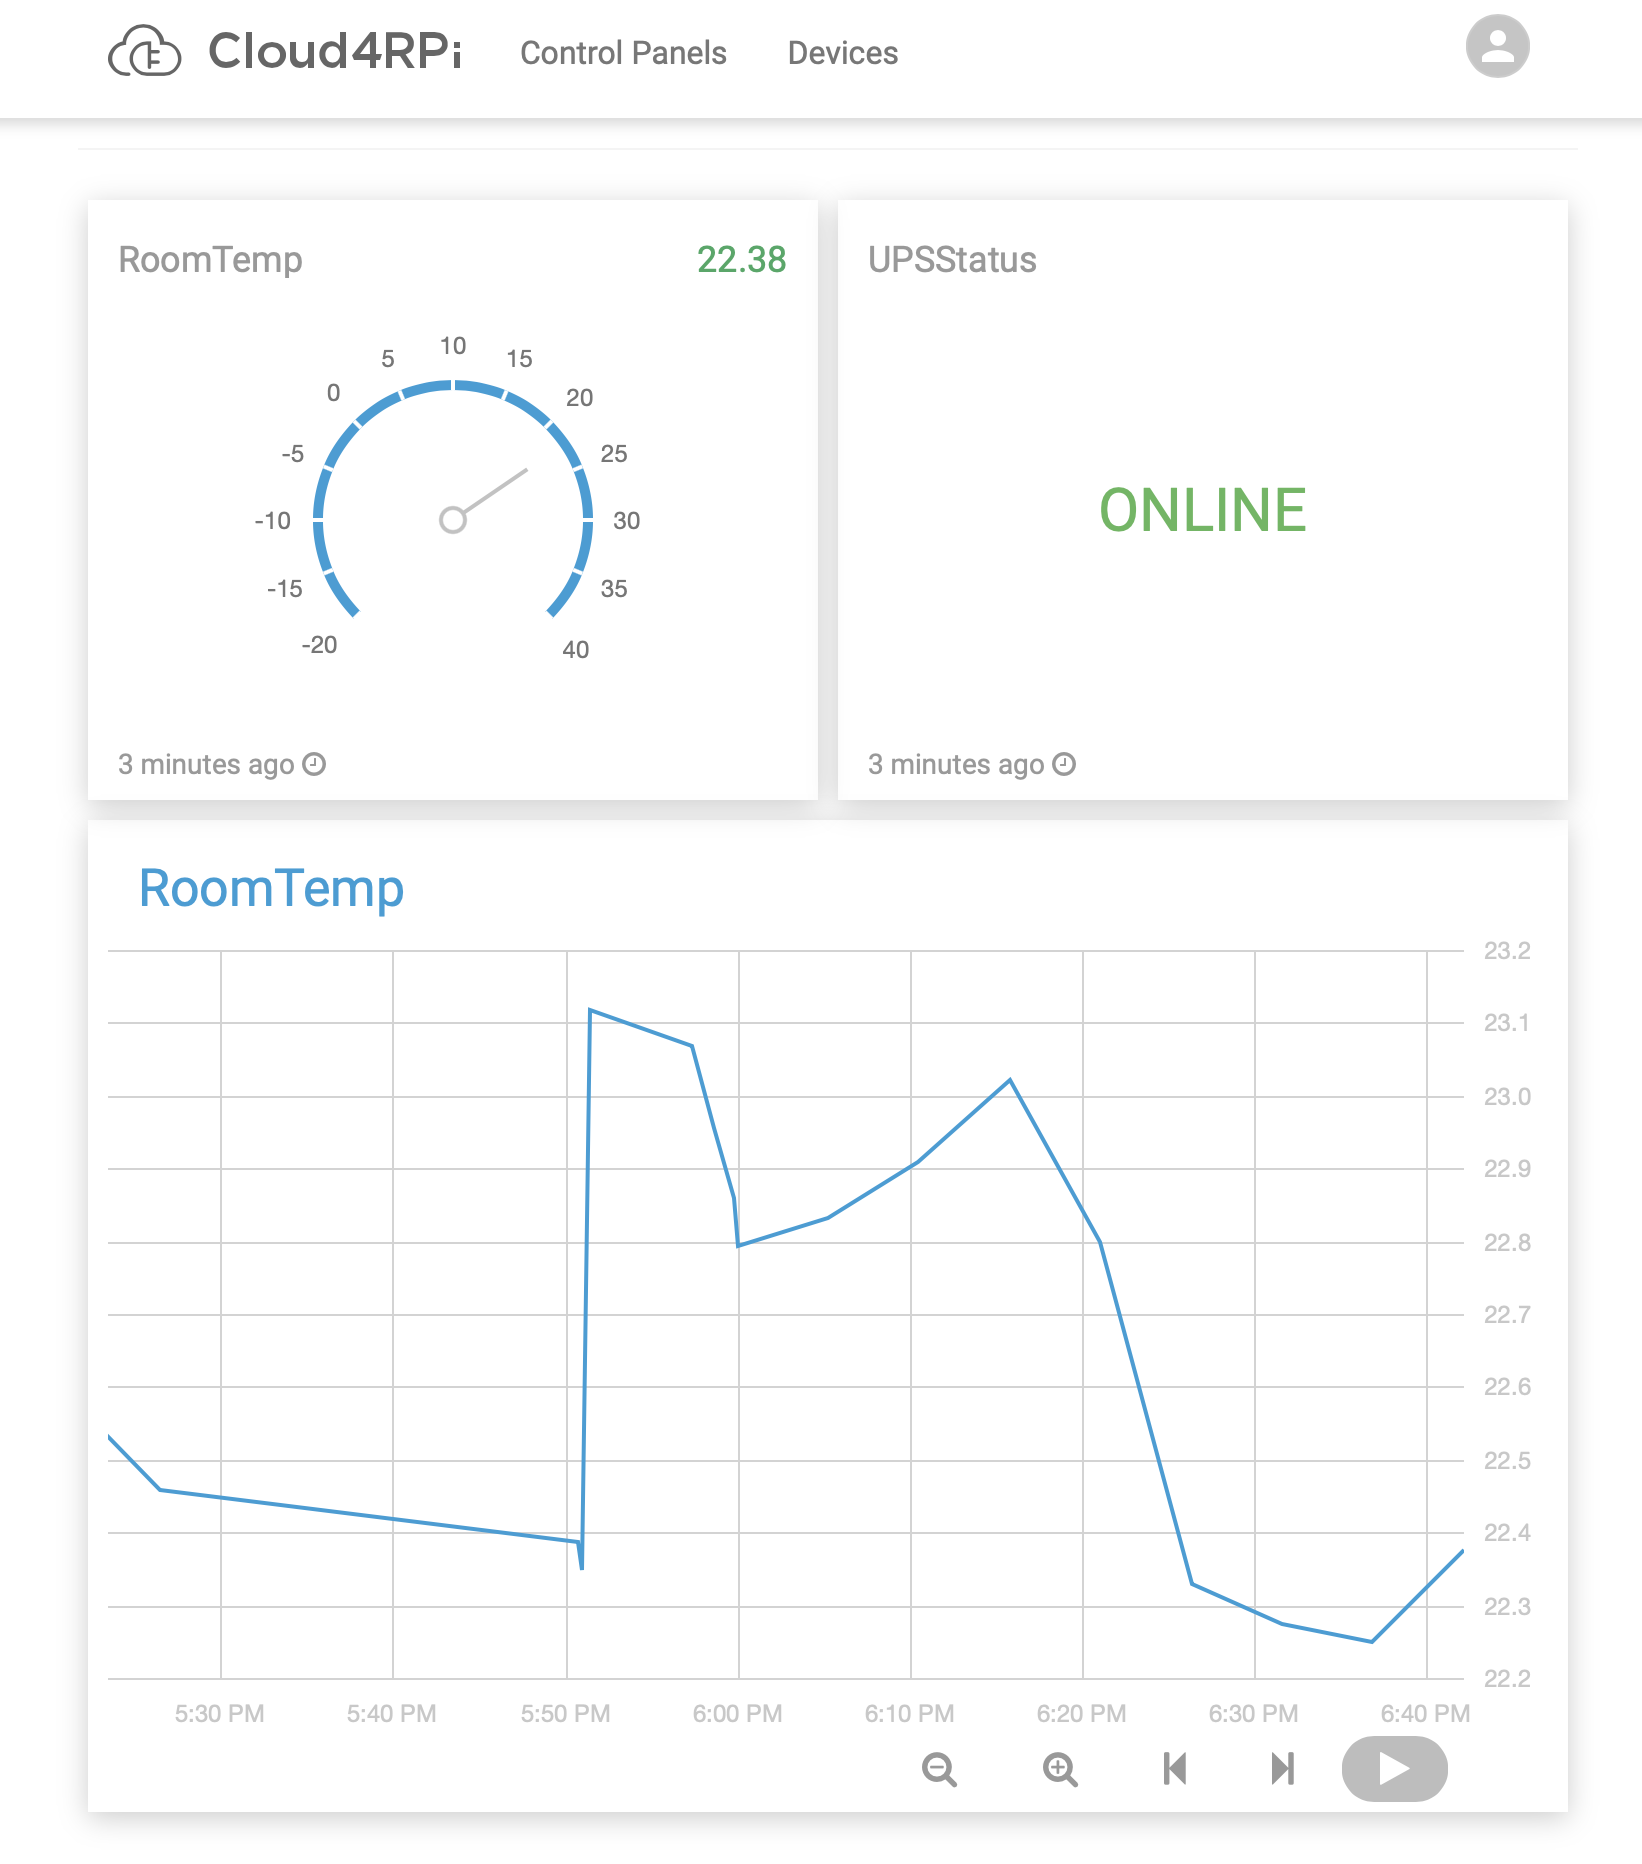 DIY house monitoring with RaspberryPi and Cloud4Rpi